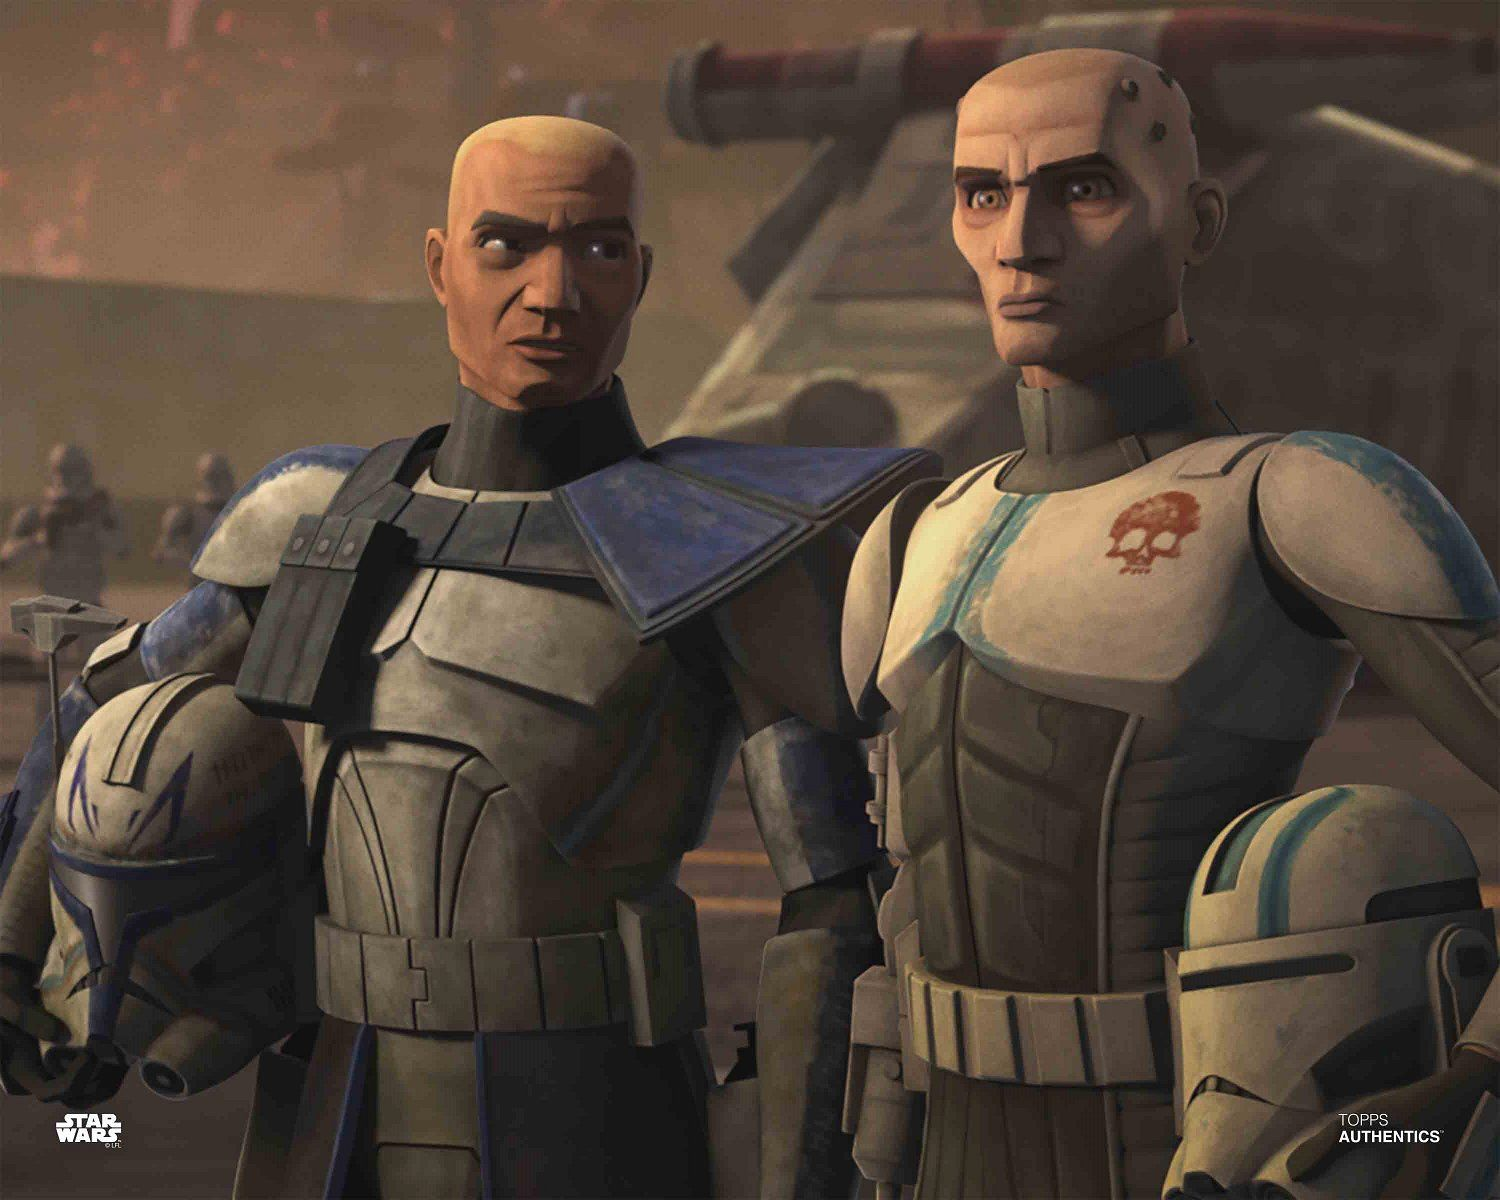 Pin By Jessica Hale On Star Wars The Clone Wars Star Wars Pictures Star Wars Images Star Wars Geek